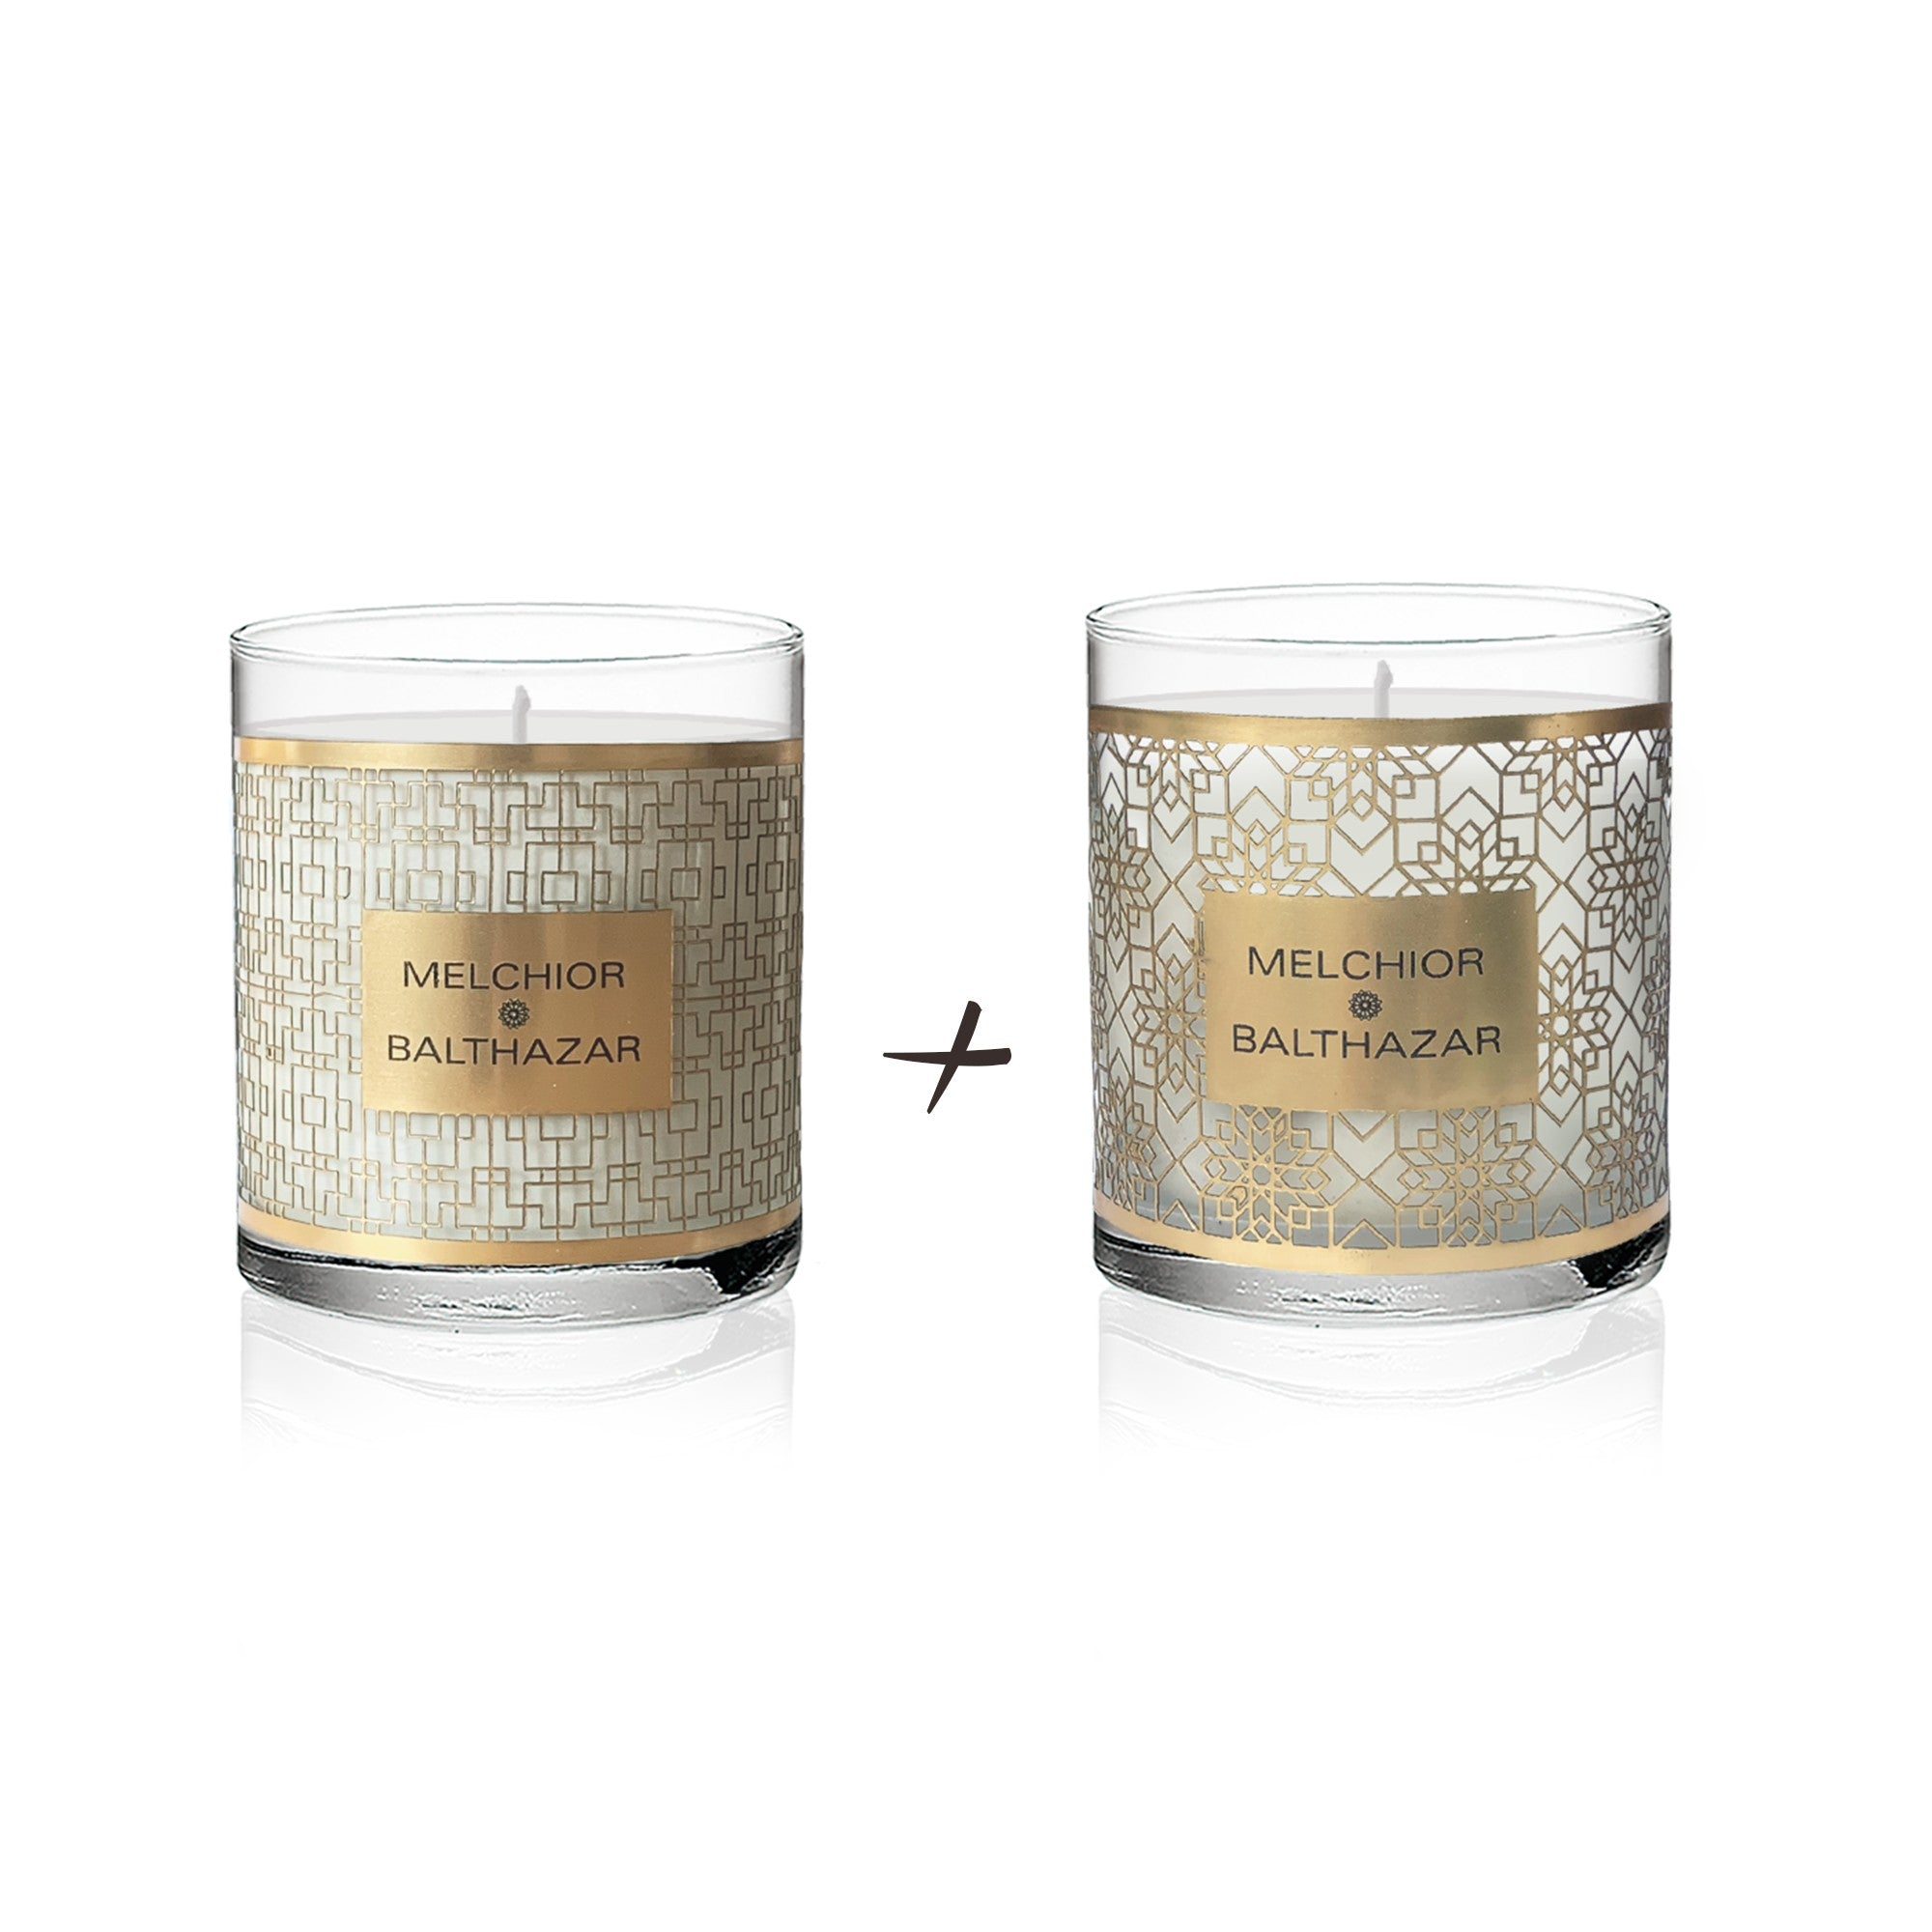 Melchior & Balthazar Ambiance Plant Candles Duo